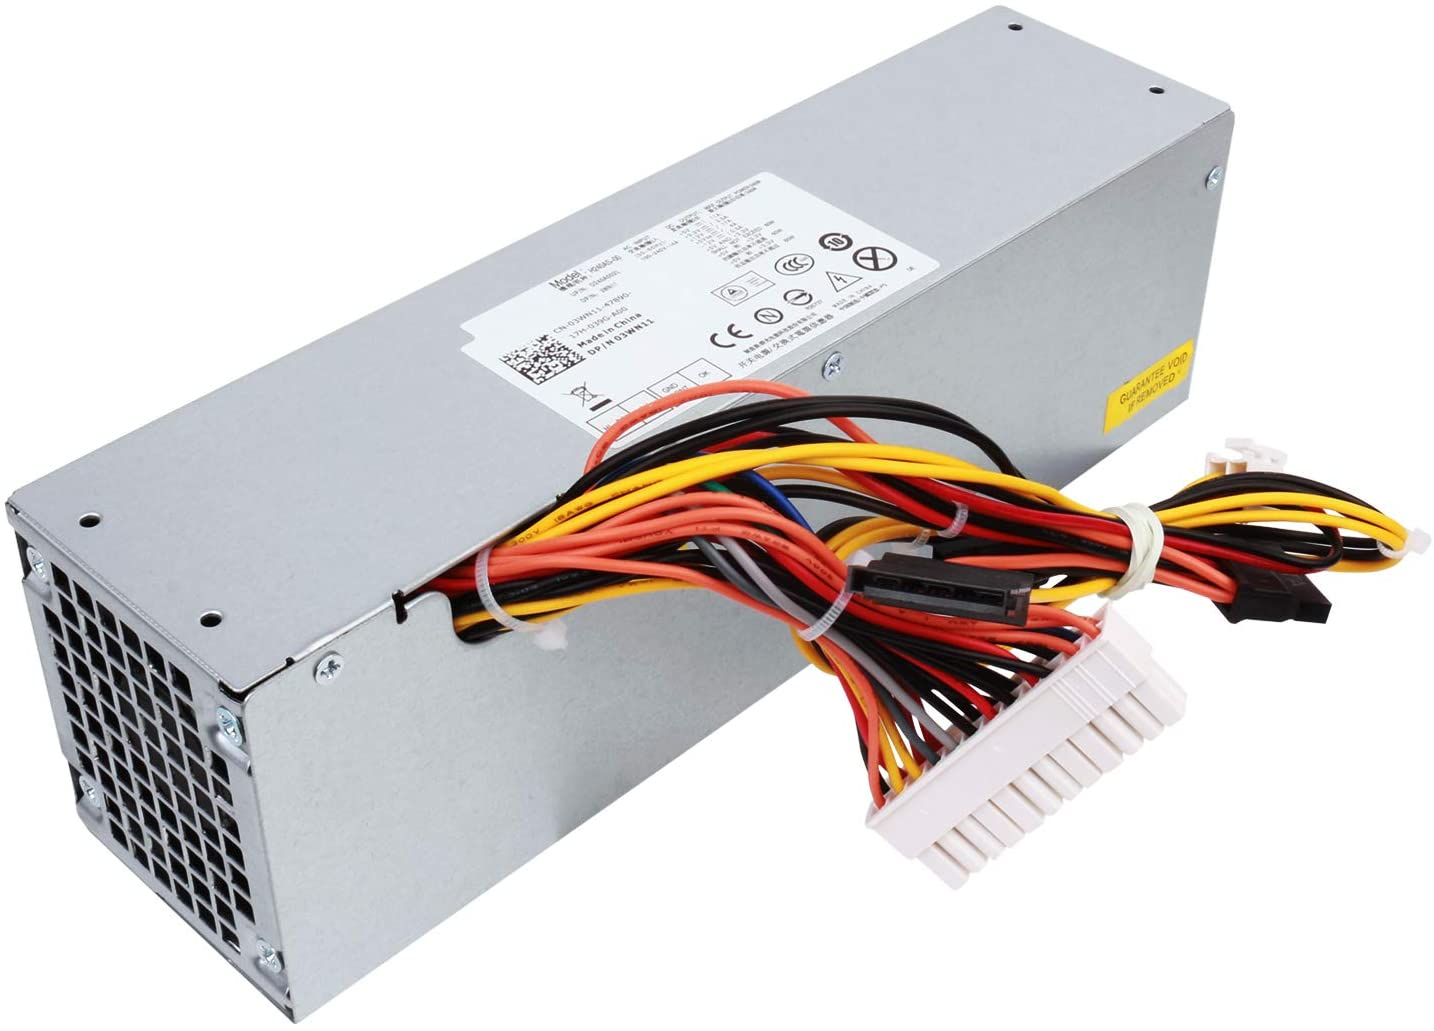 Replacement Max 64% OFF 240W Power Max 40% OFF Supply for Dell 790 30 3YKG5 990 OptiPlex